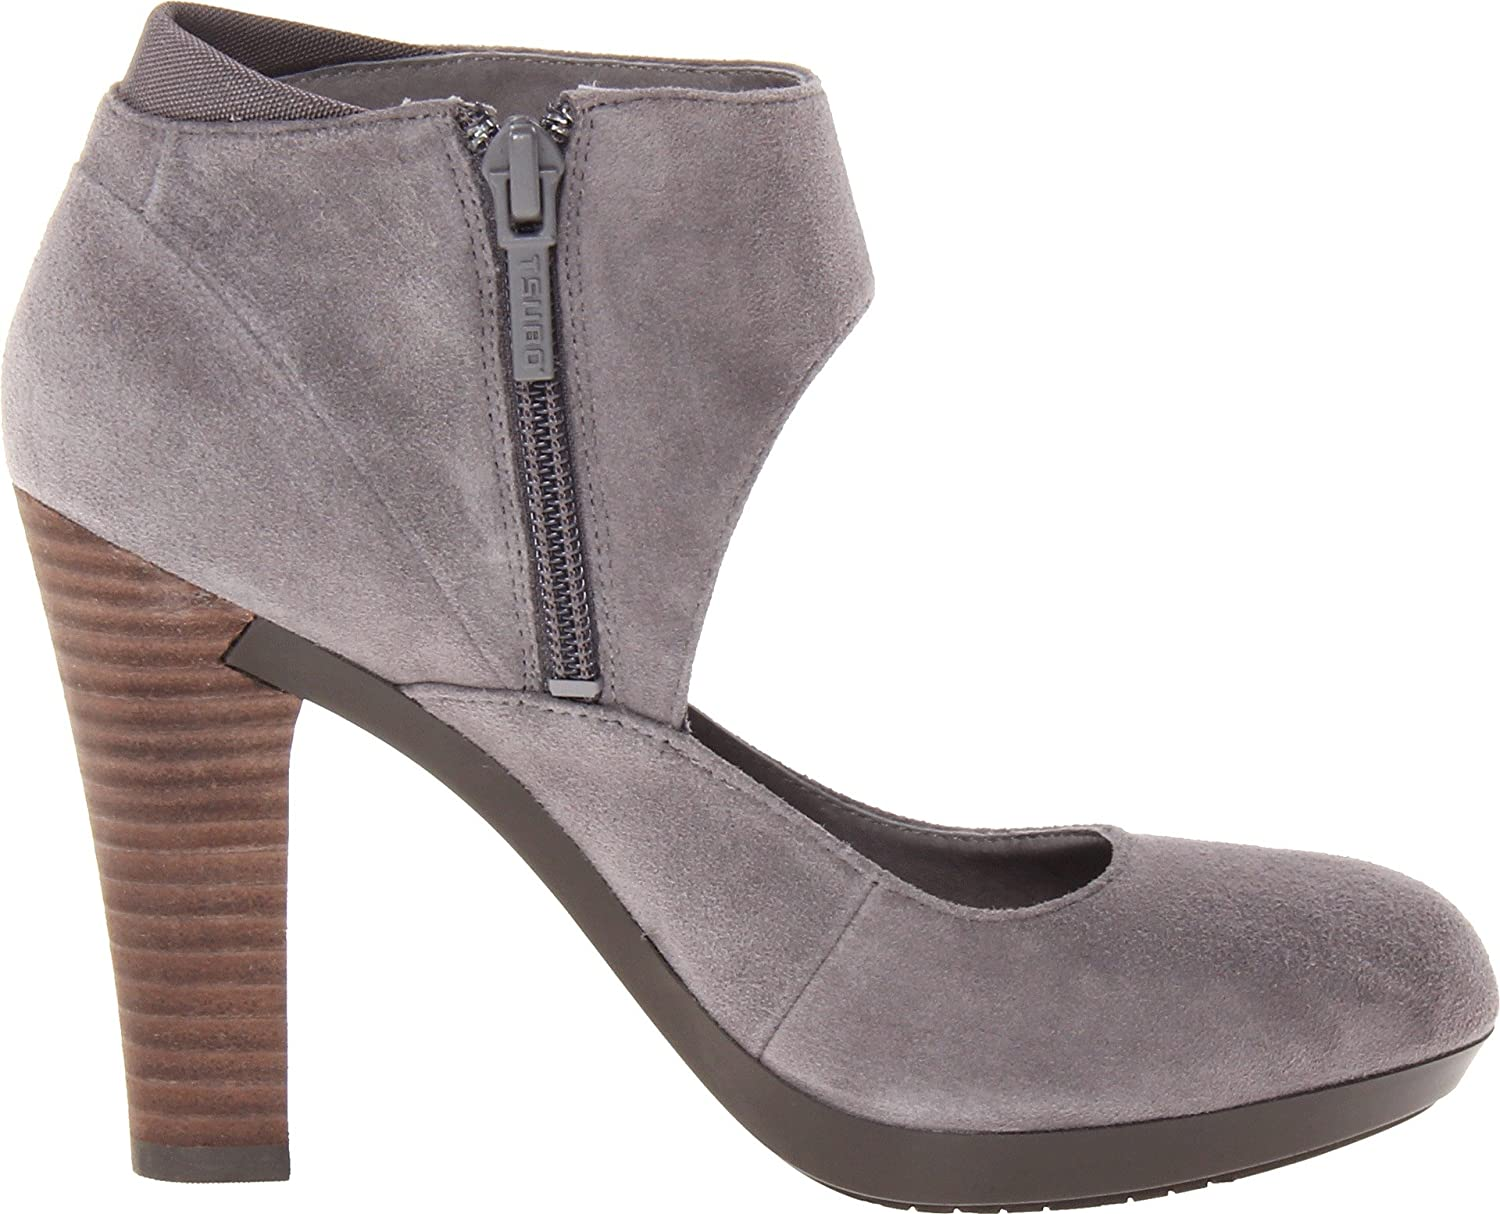 TSUBO Women's Tace Bootie